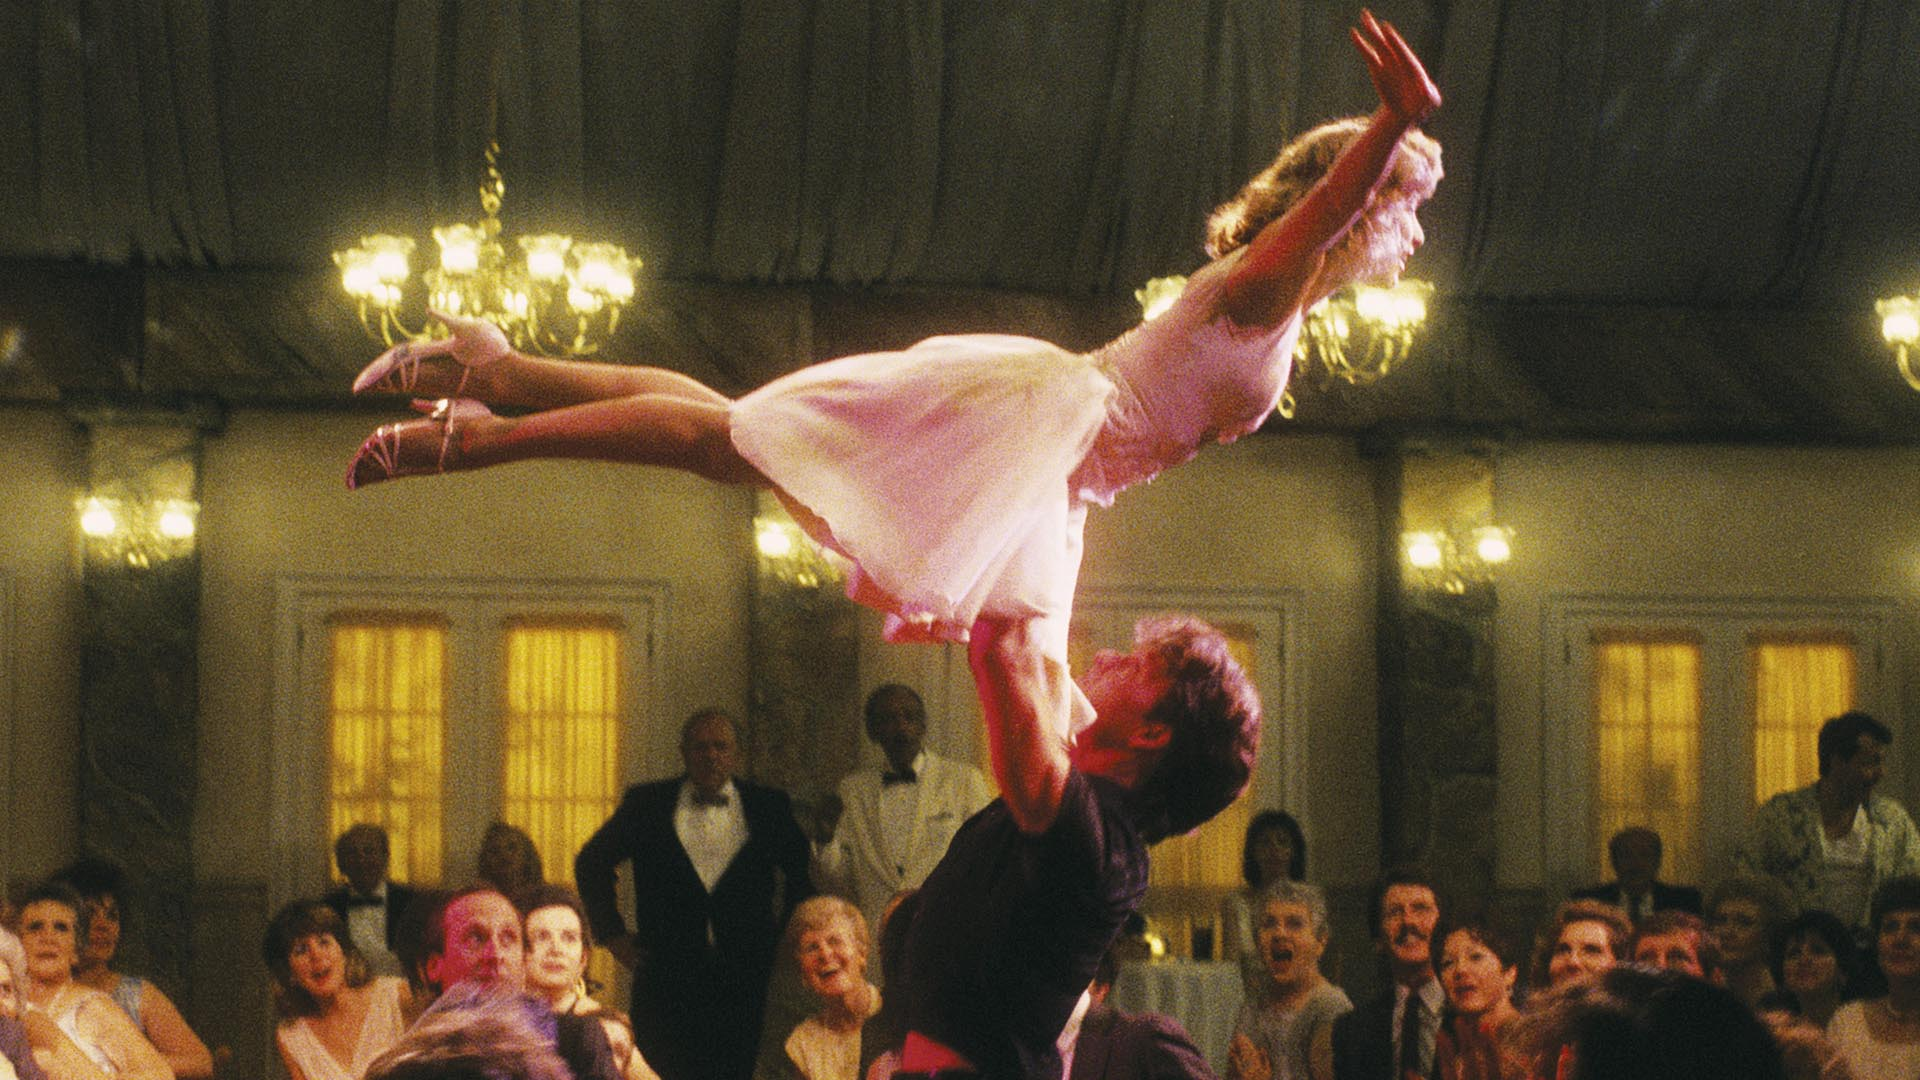 dirty dancing background 01 30 Things You Probably Didn't Know About Dirty Dancing